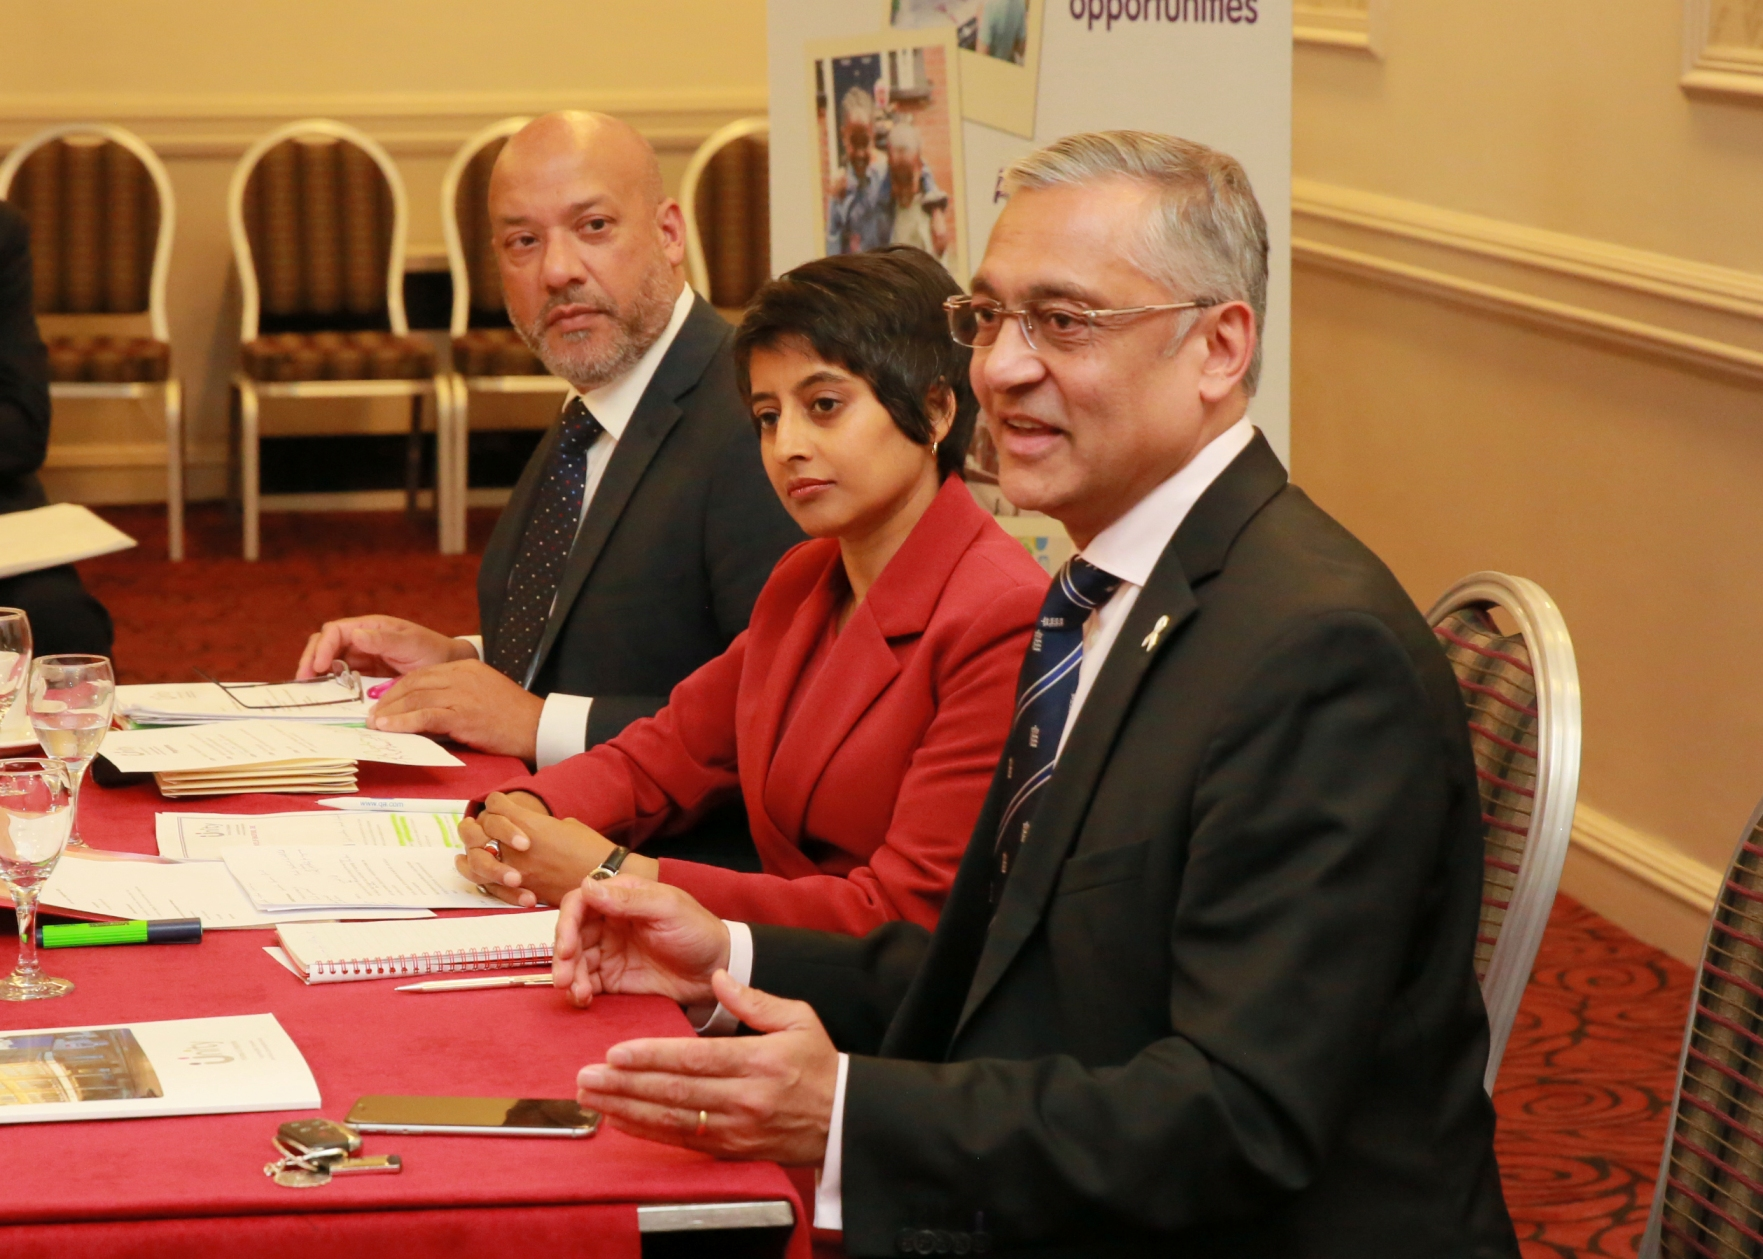 Lord Patel of Bradford answers questions following his keynote speech at the Unity Homes and Enterprise AGM